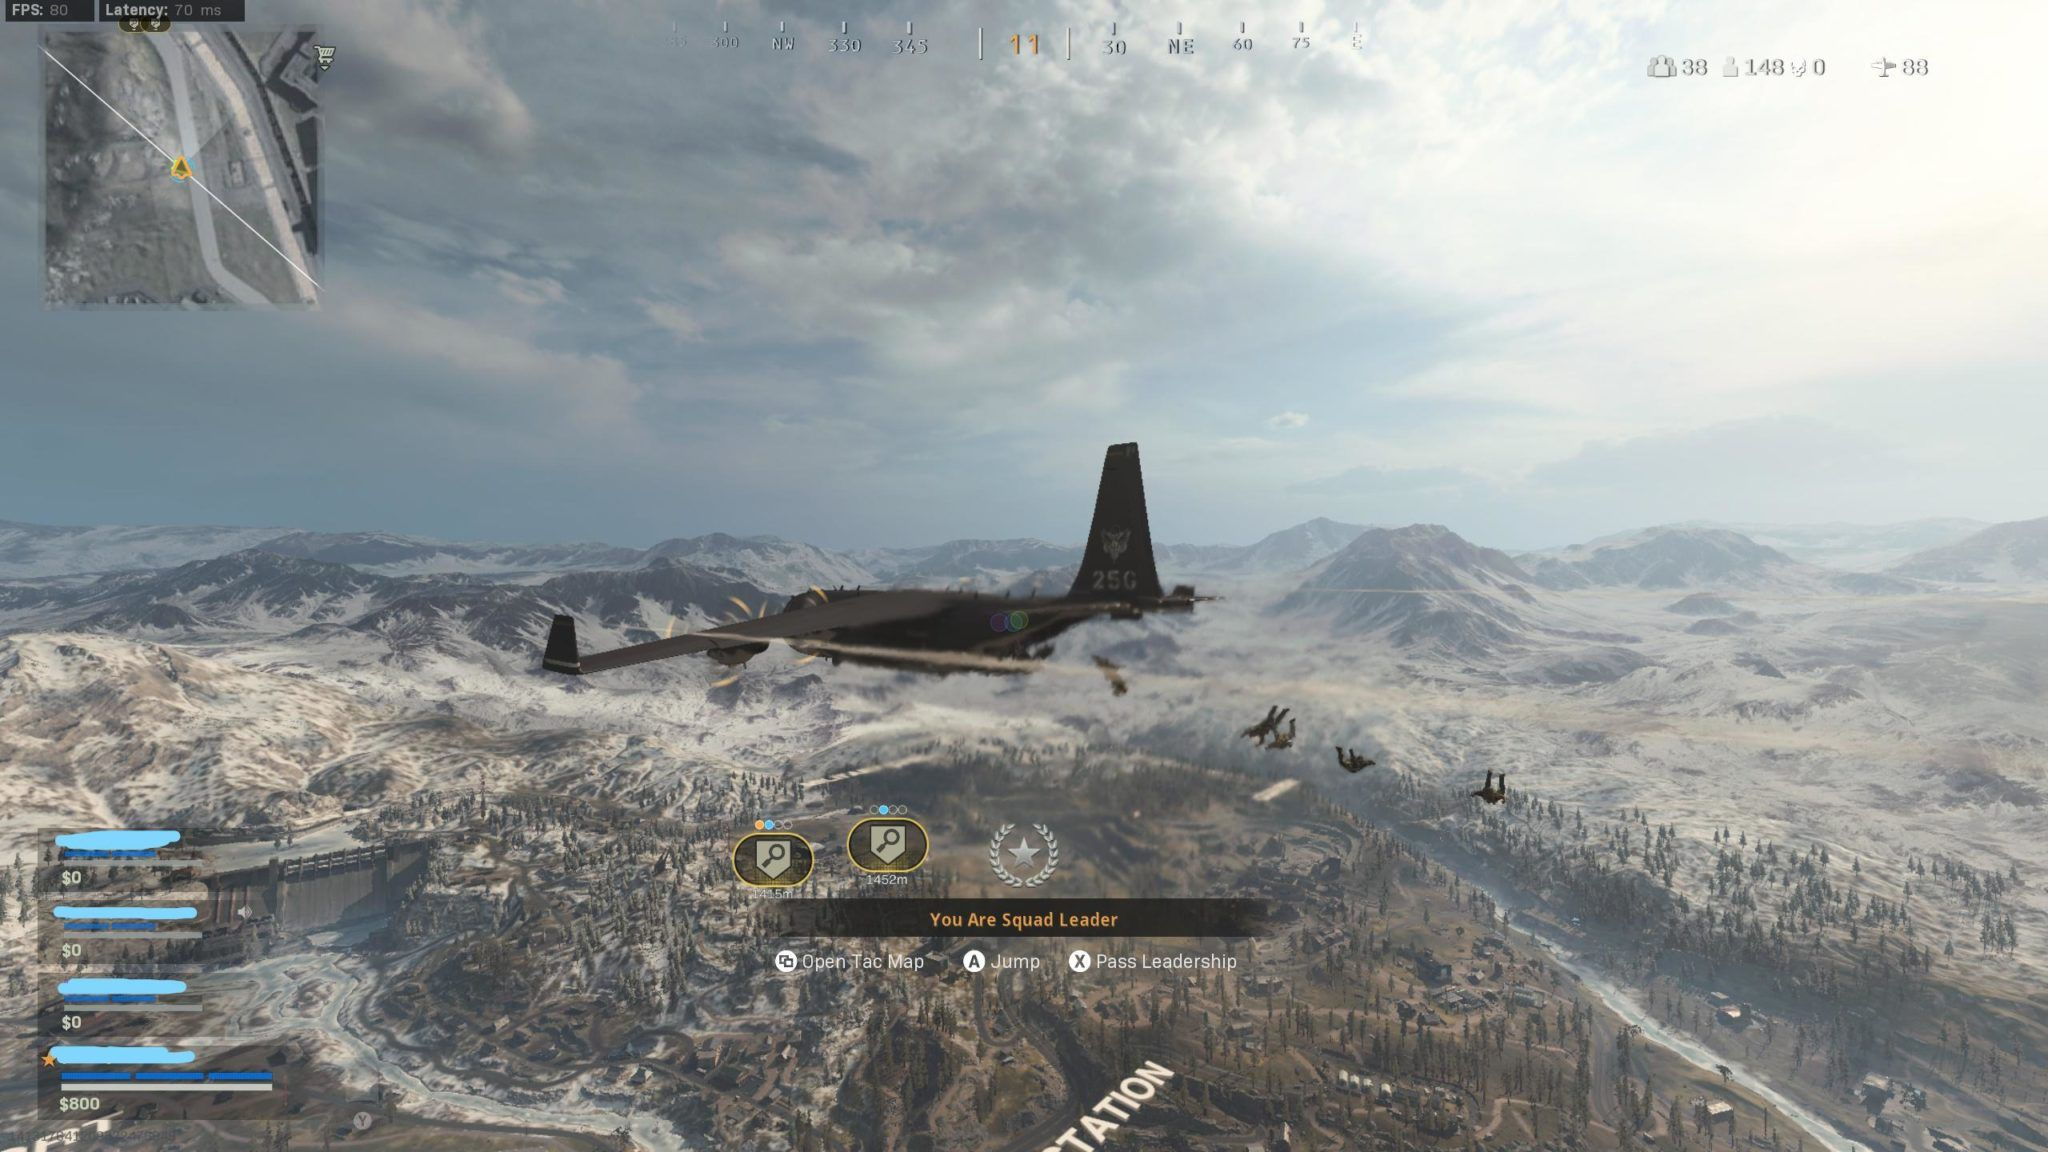 Call of Duty Warzone Infinity Ward argent | Reddit : Aviationist